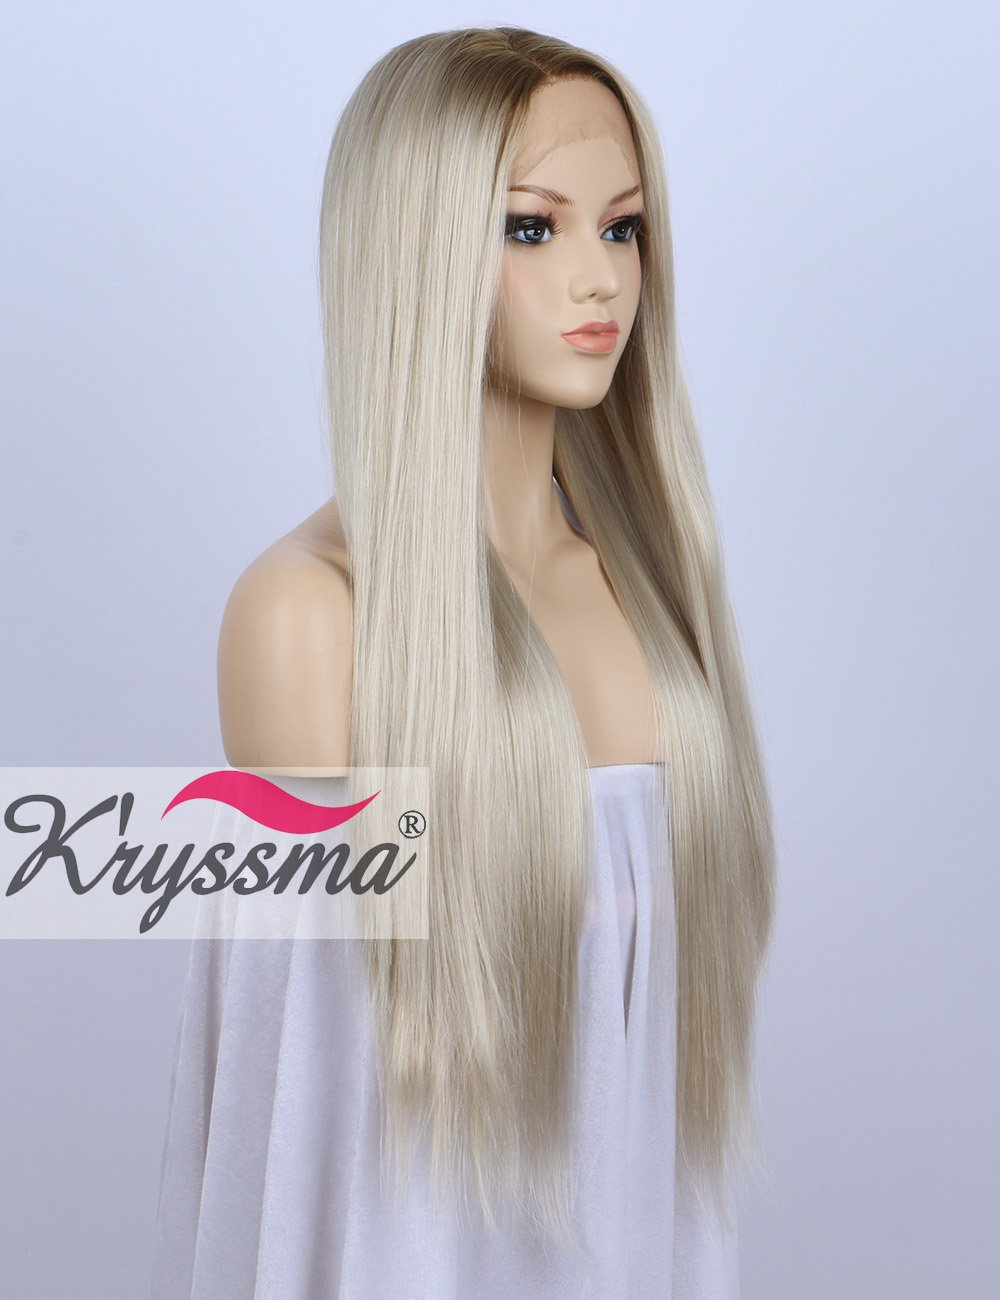 K'ryssma Ombre Blonde Lace Front Wigs Long Straight Synthetic Wig For Women Heat Resistant 24 inches K'ryssma